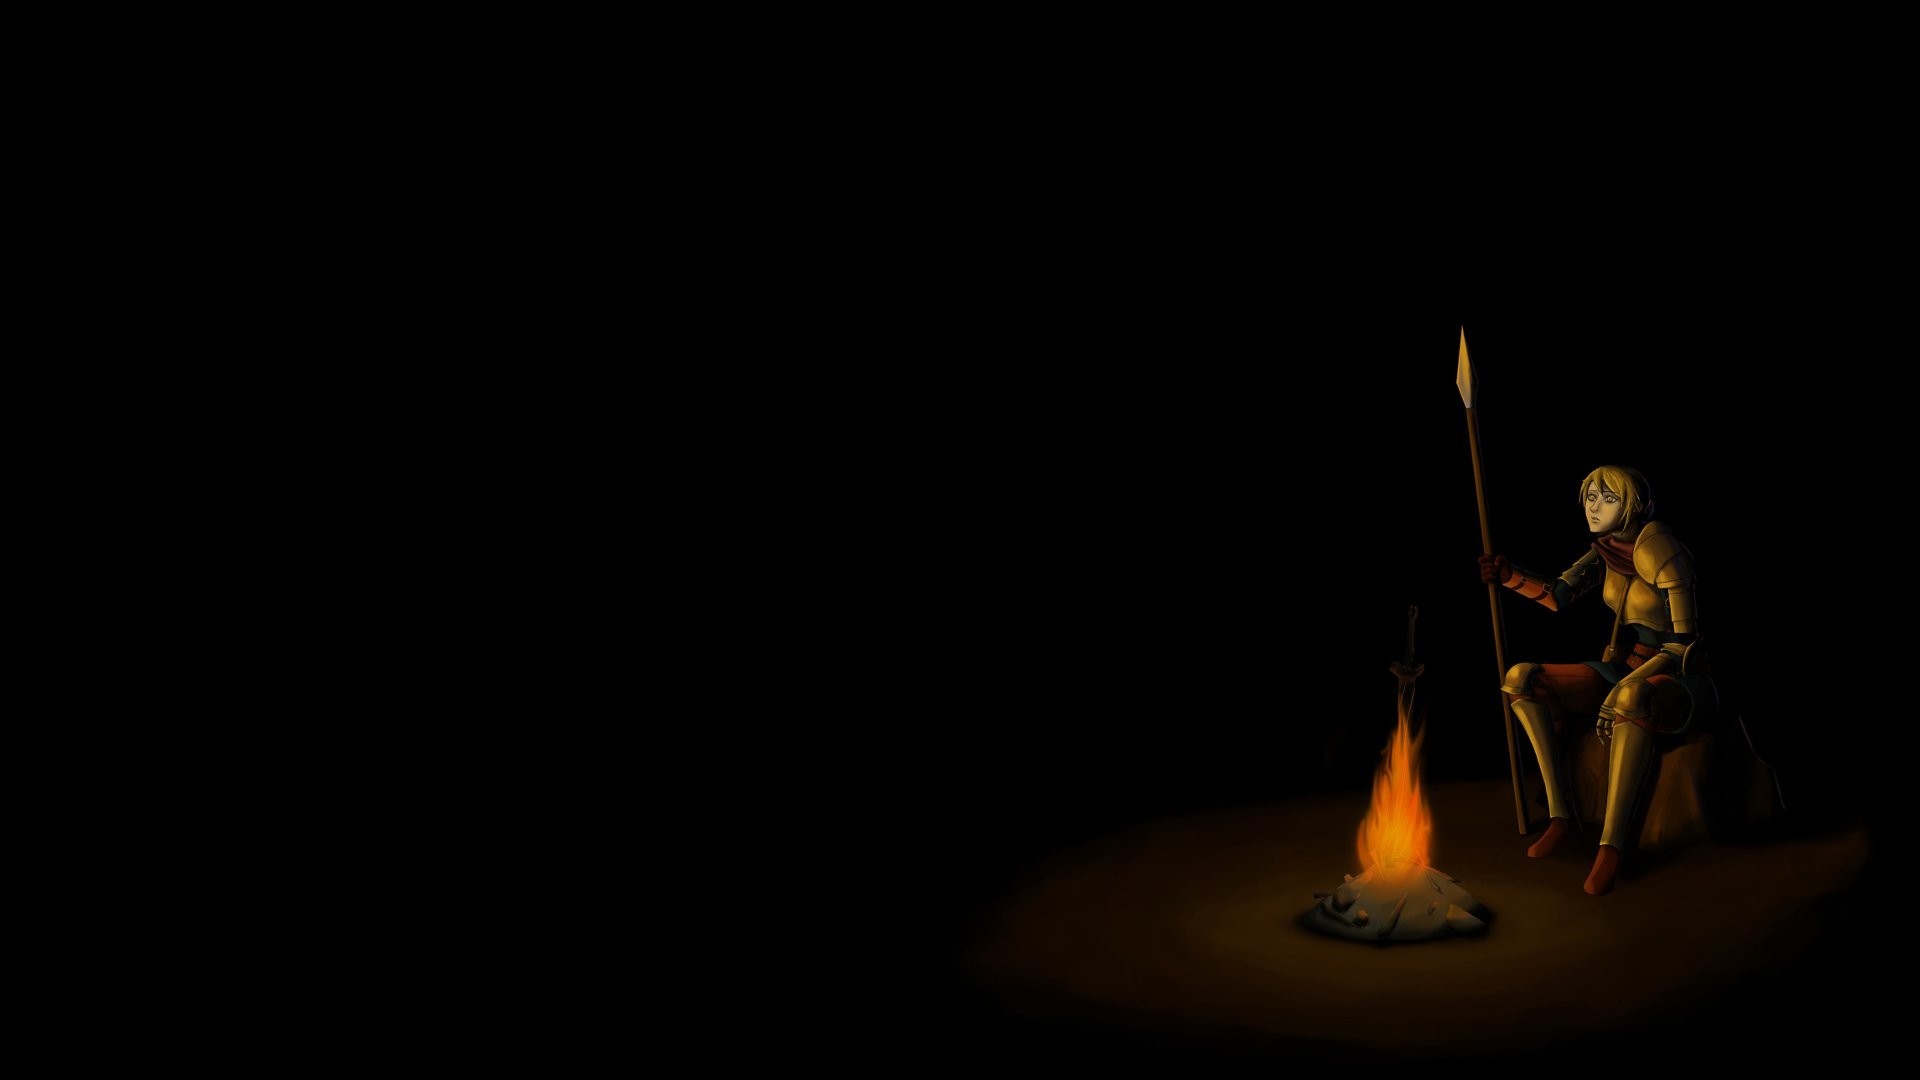 dark souls bonfire wallpaper 1920×1080